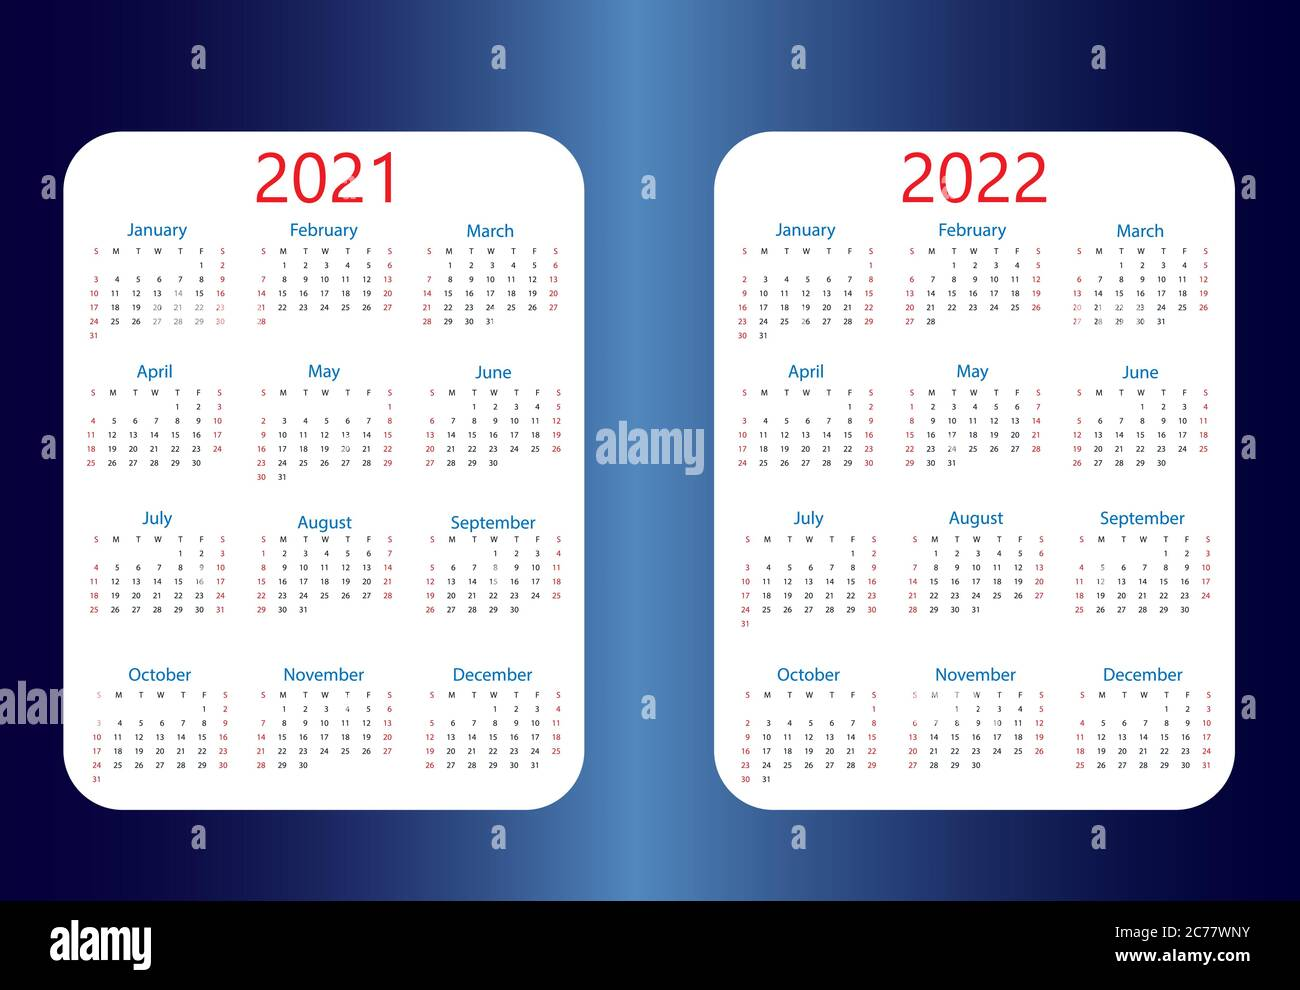 February Calendar High Resolution Stock Photography and Images